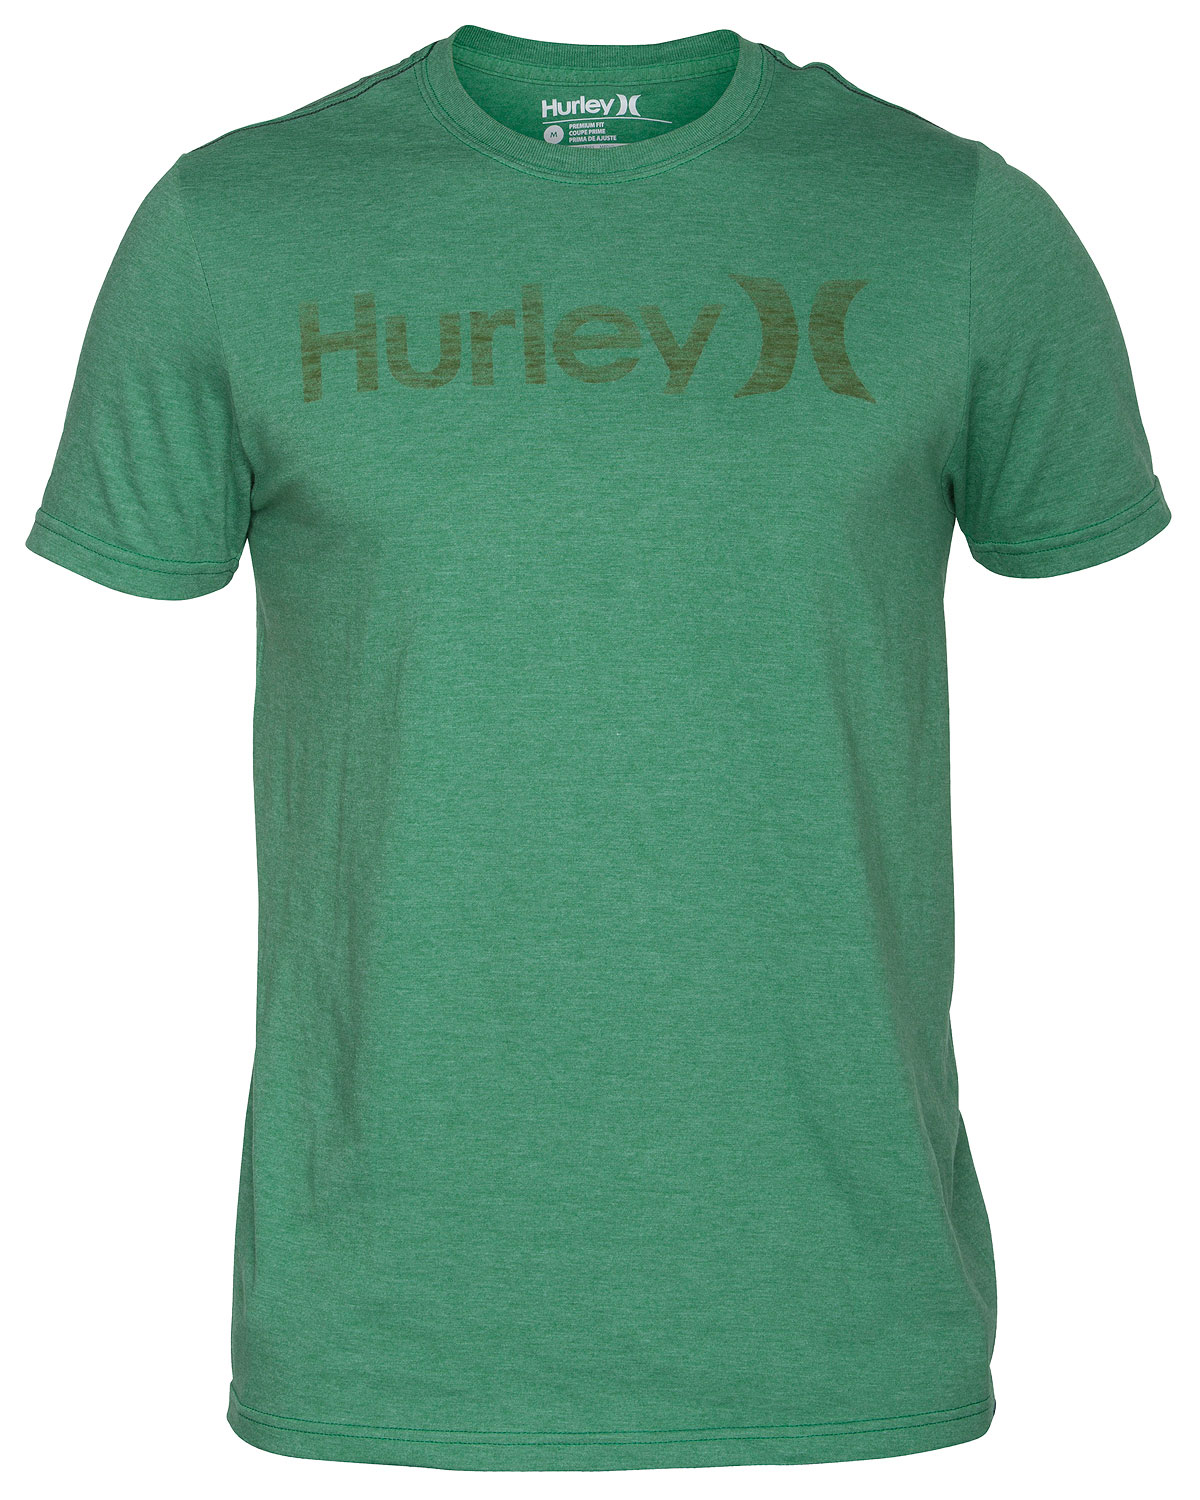 Surf Key Features of the Hurley One & Only Push Through Premium T-Shirt: Premium fit 30 singles 100% cotton solids and 50% cotton/50% polyester heathers Woven icon loop label Screen-printed inside neck and soft-hand push through print - $13.95